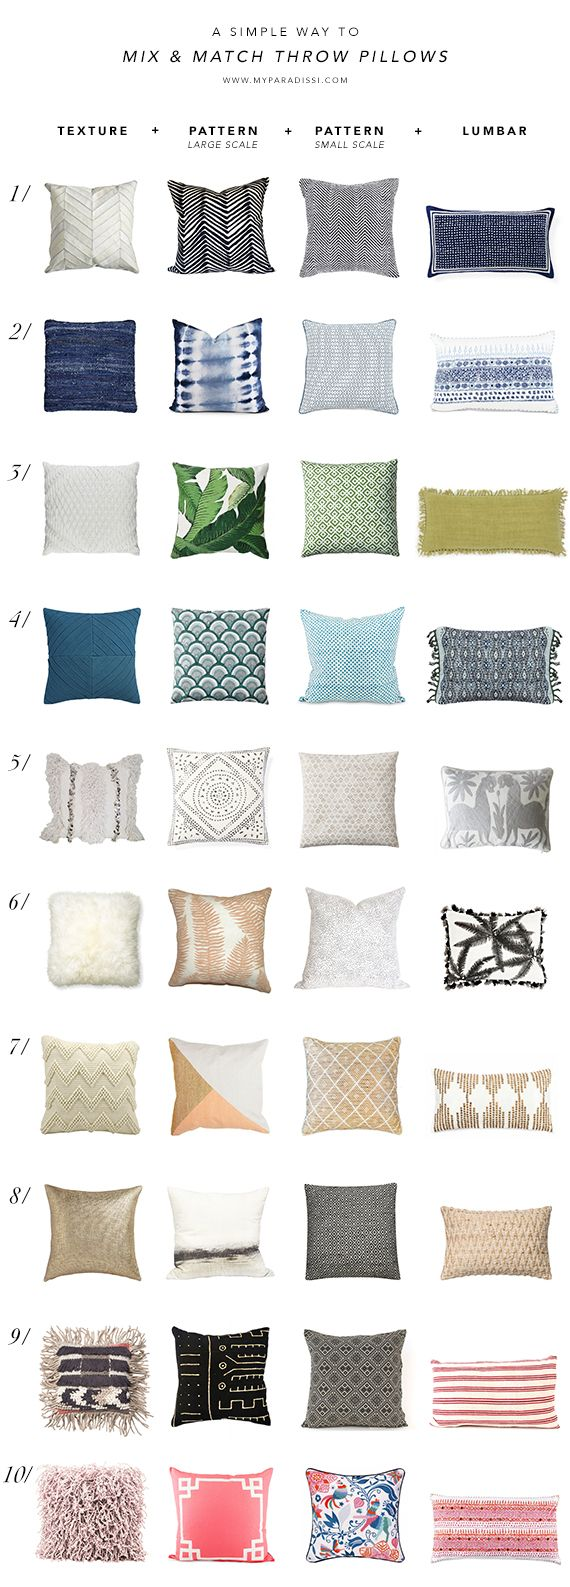 A Simple Way To Mix And Match Throw Pillows